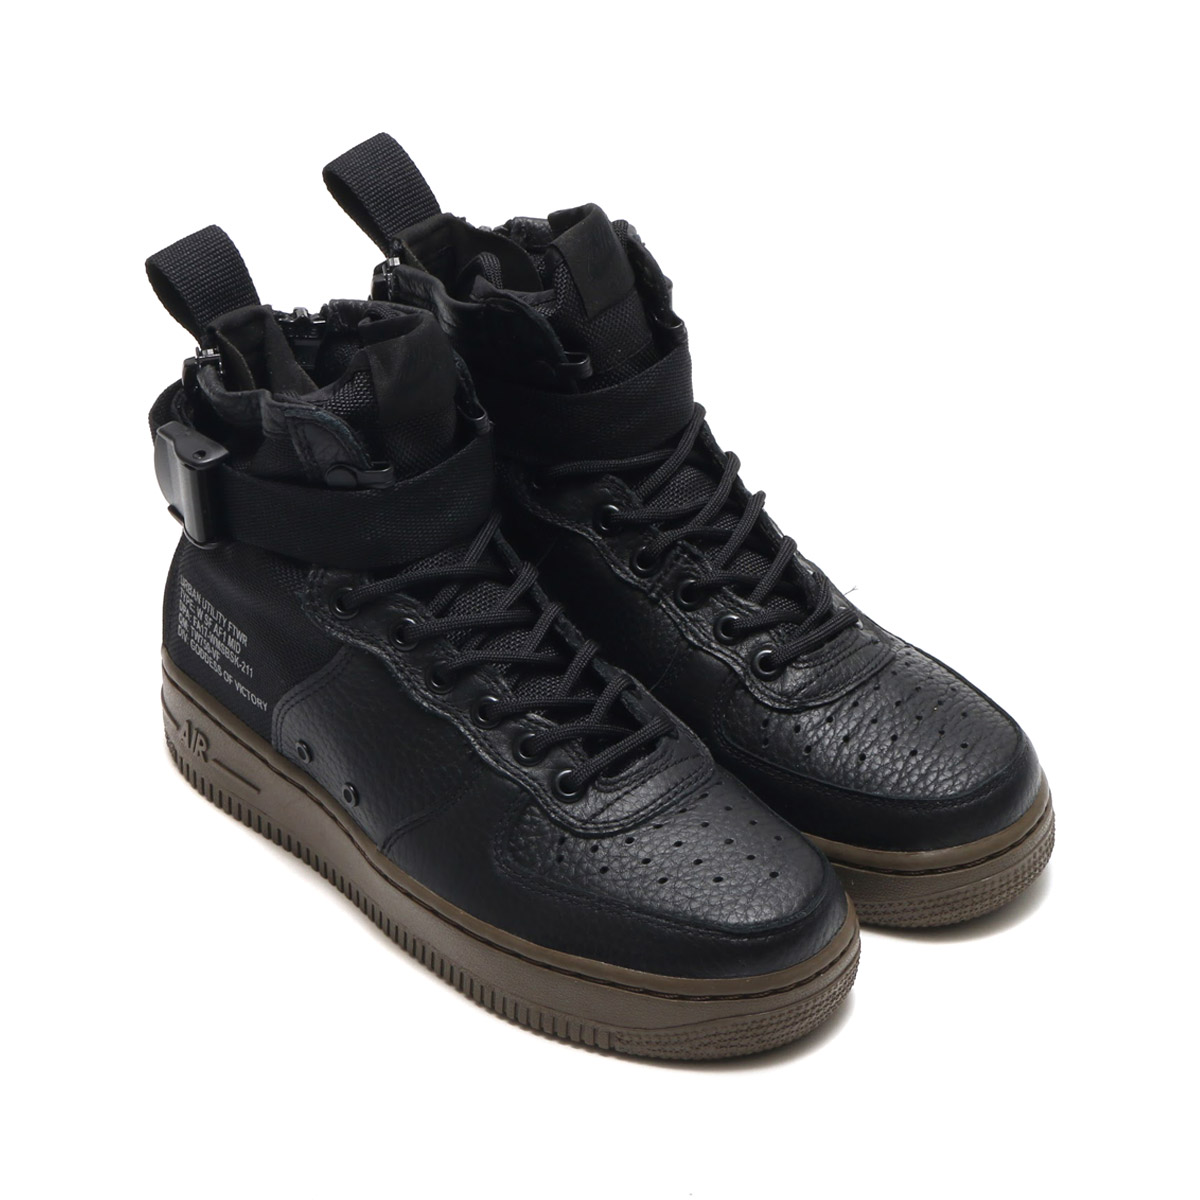 NIKE W SF AF1 MID (Nike women special field air force 1 mid) (BLACK BLACK- DARK HAZEL) 17FA-S e70193c74